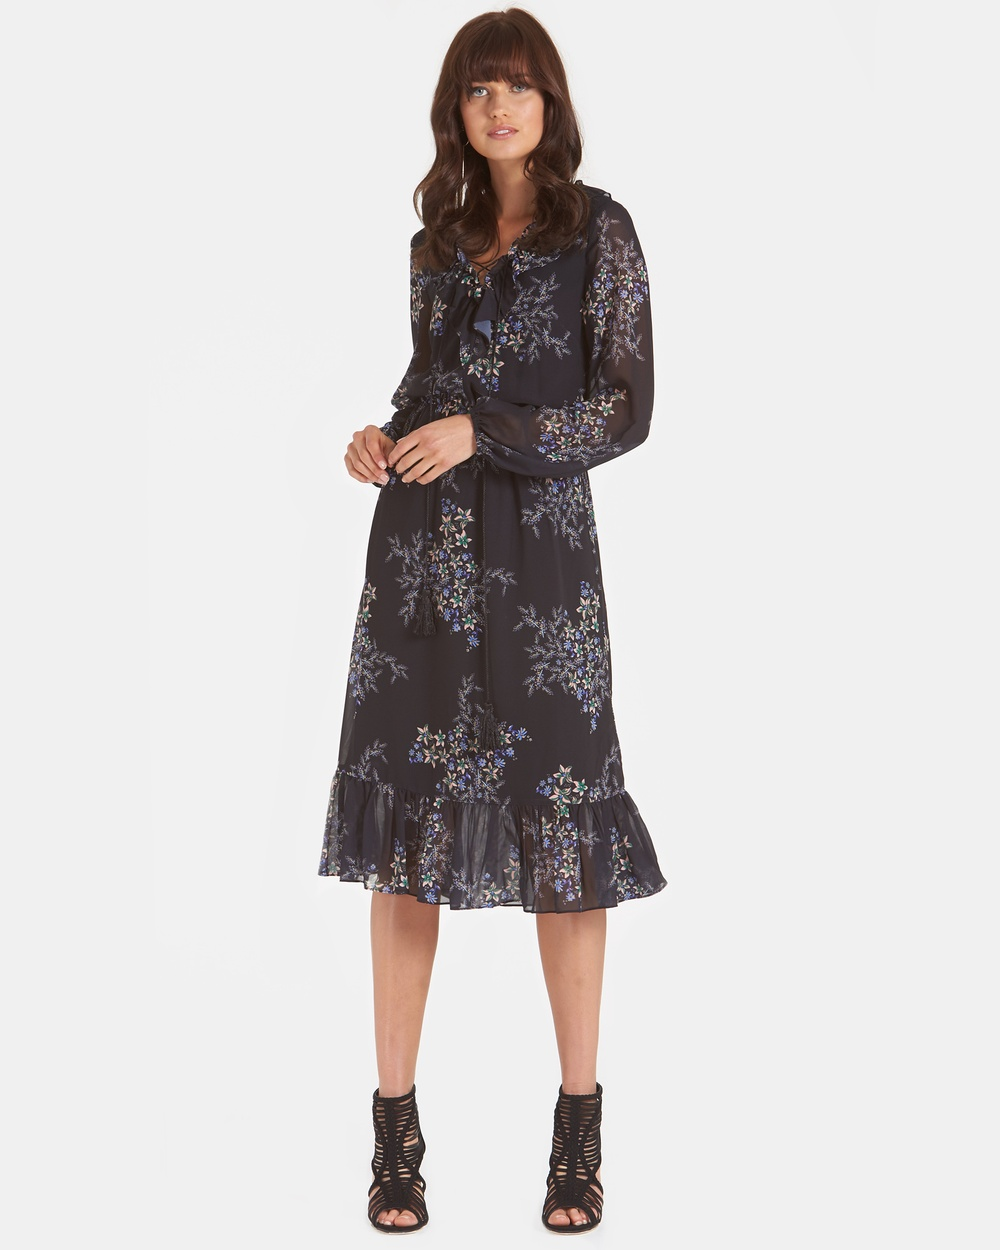 Amelius Multi Gypsy Folk Midi Dress